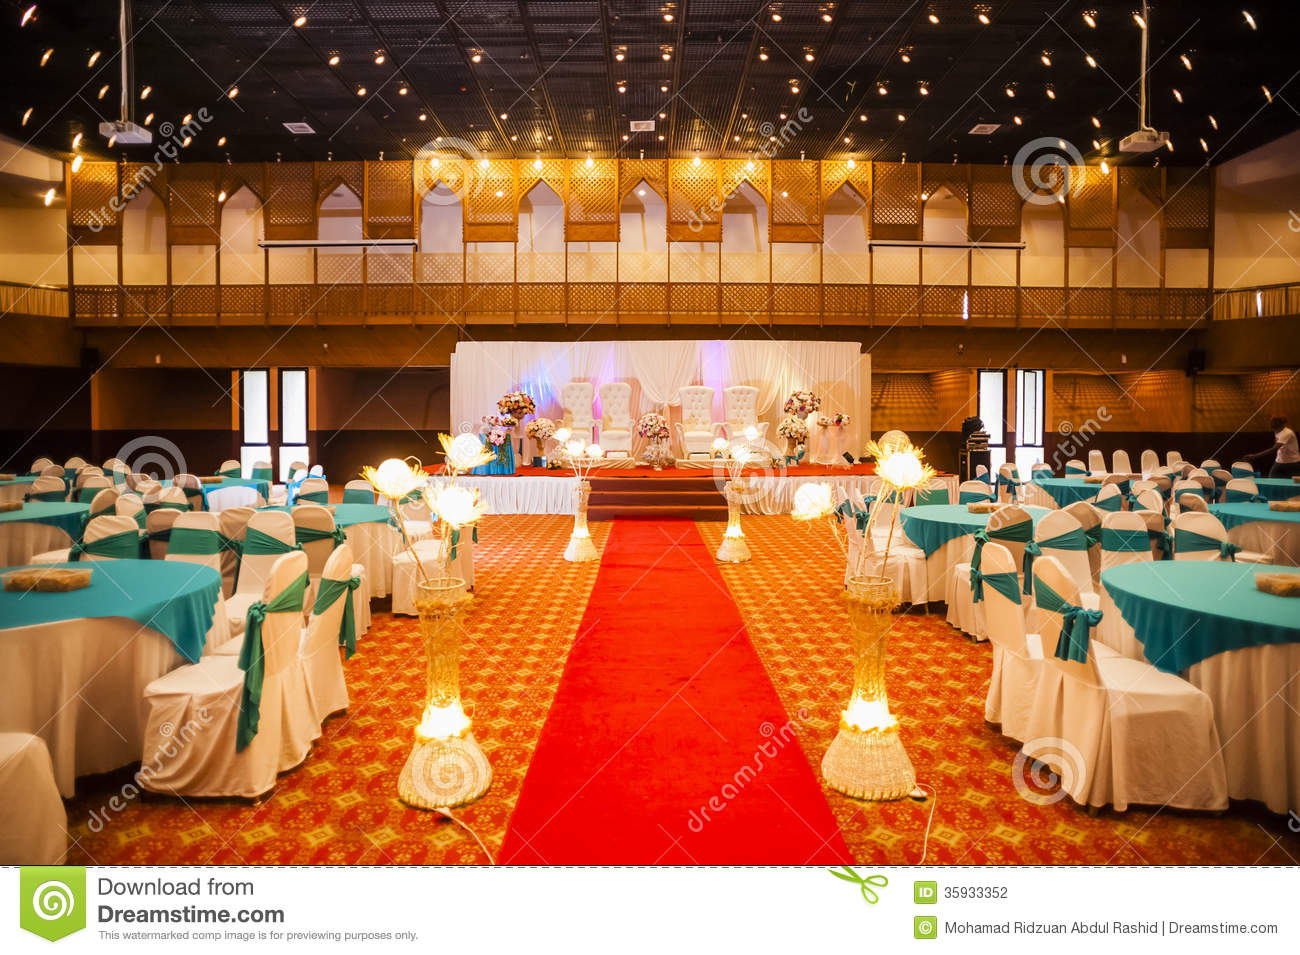 Wedding hall decoration stock photography image 35933352 for Hall decoration images